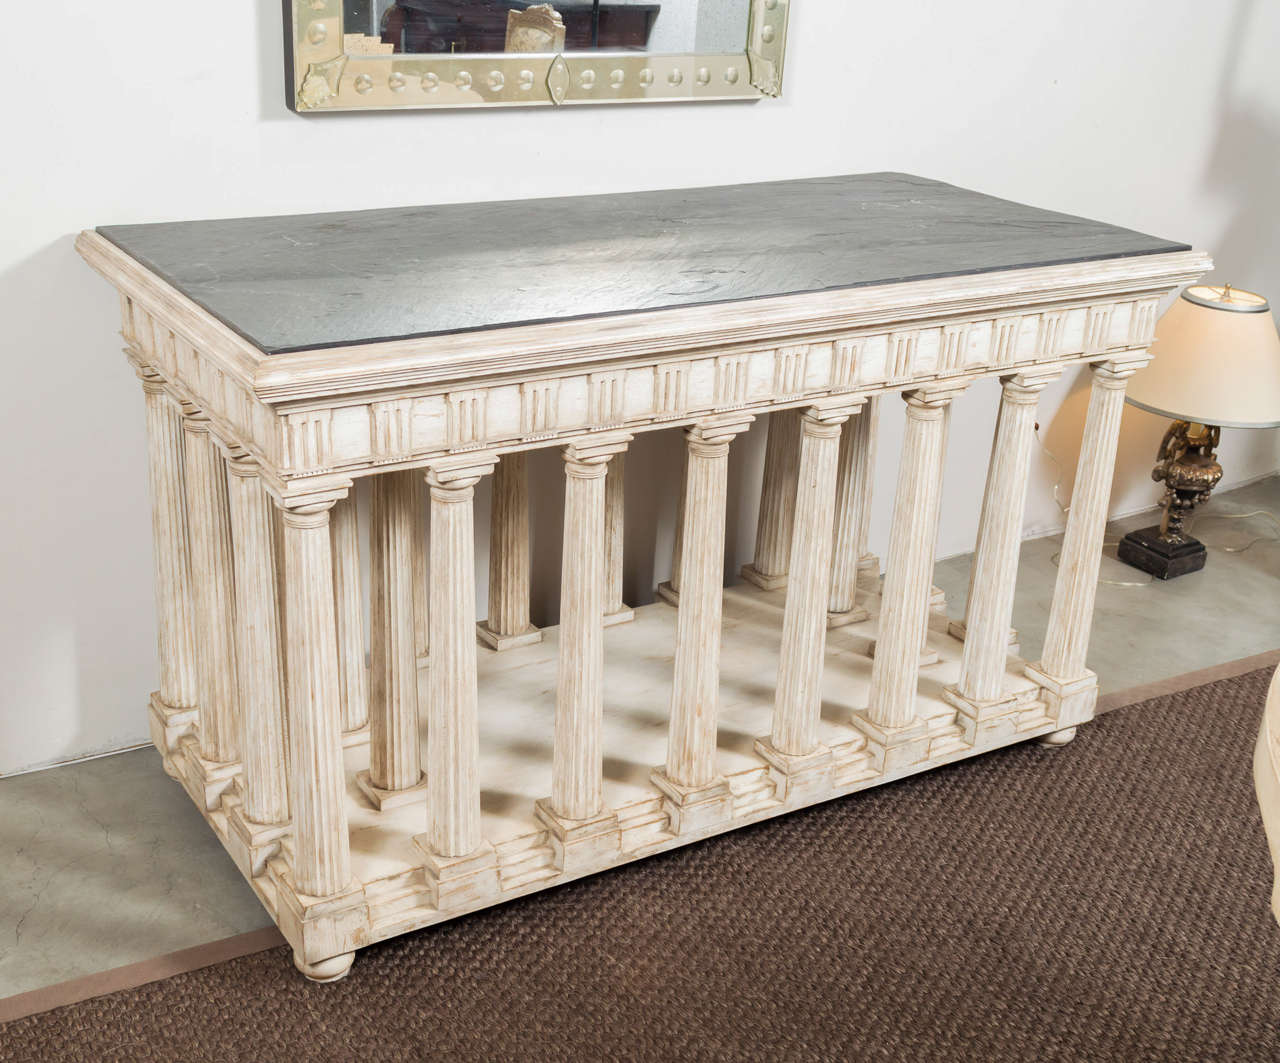 Hand-Painted and Antiqued Slate Top Architectural Center Table 2